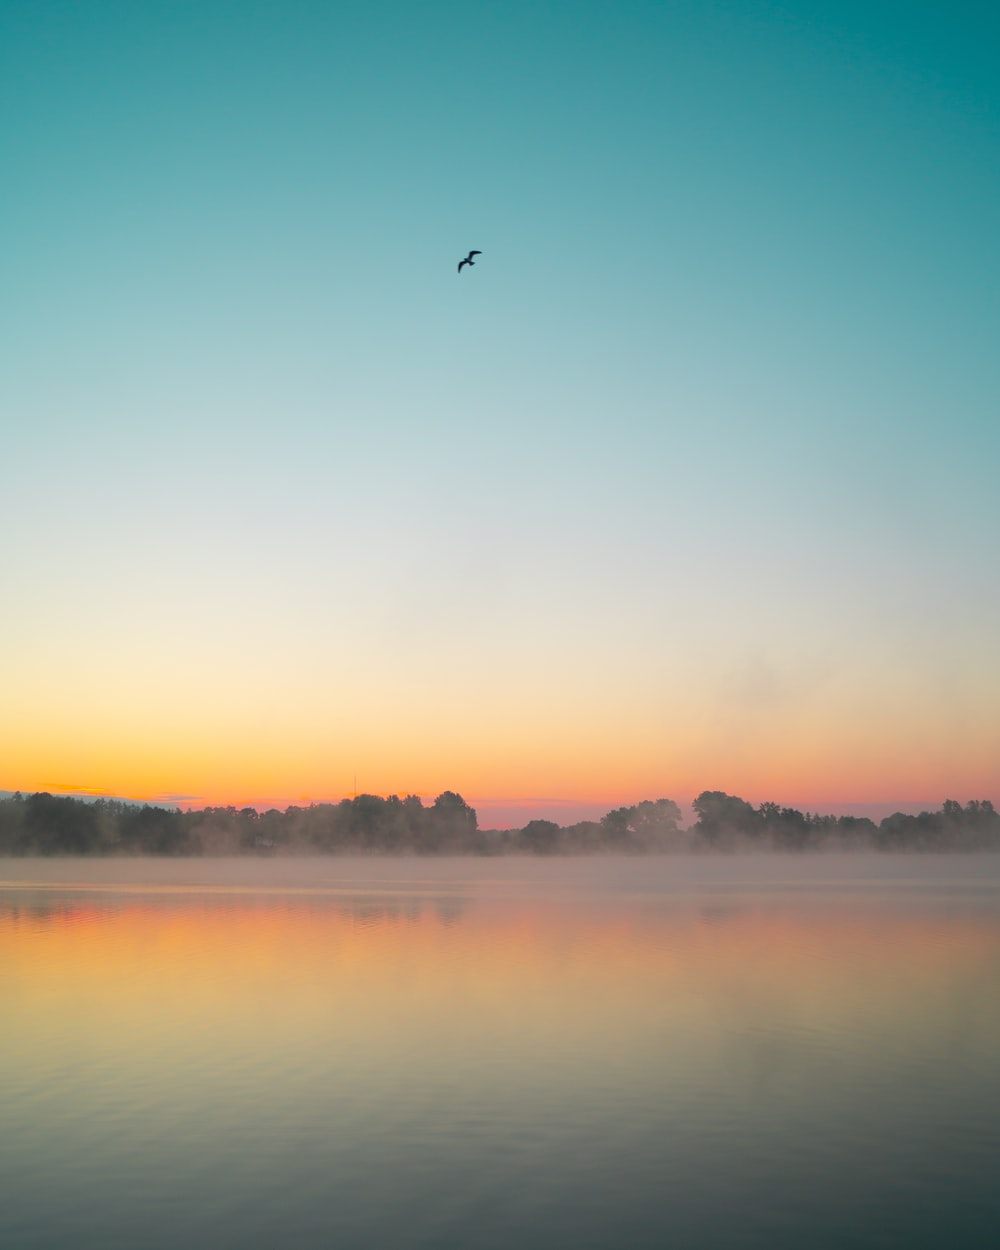 bird flying over the lake during sunset